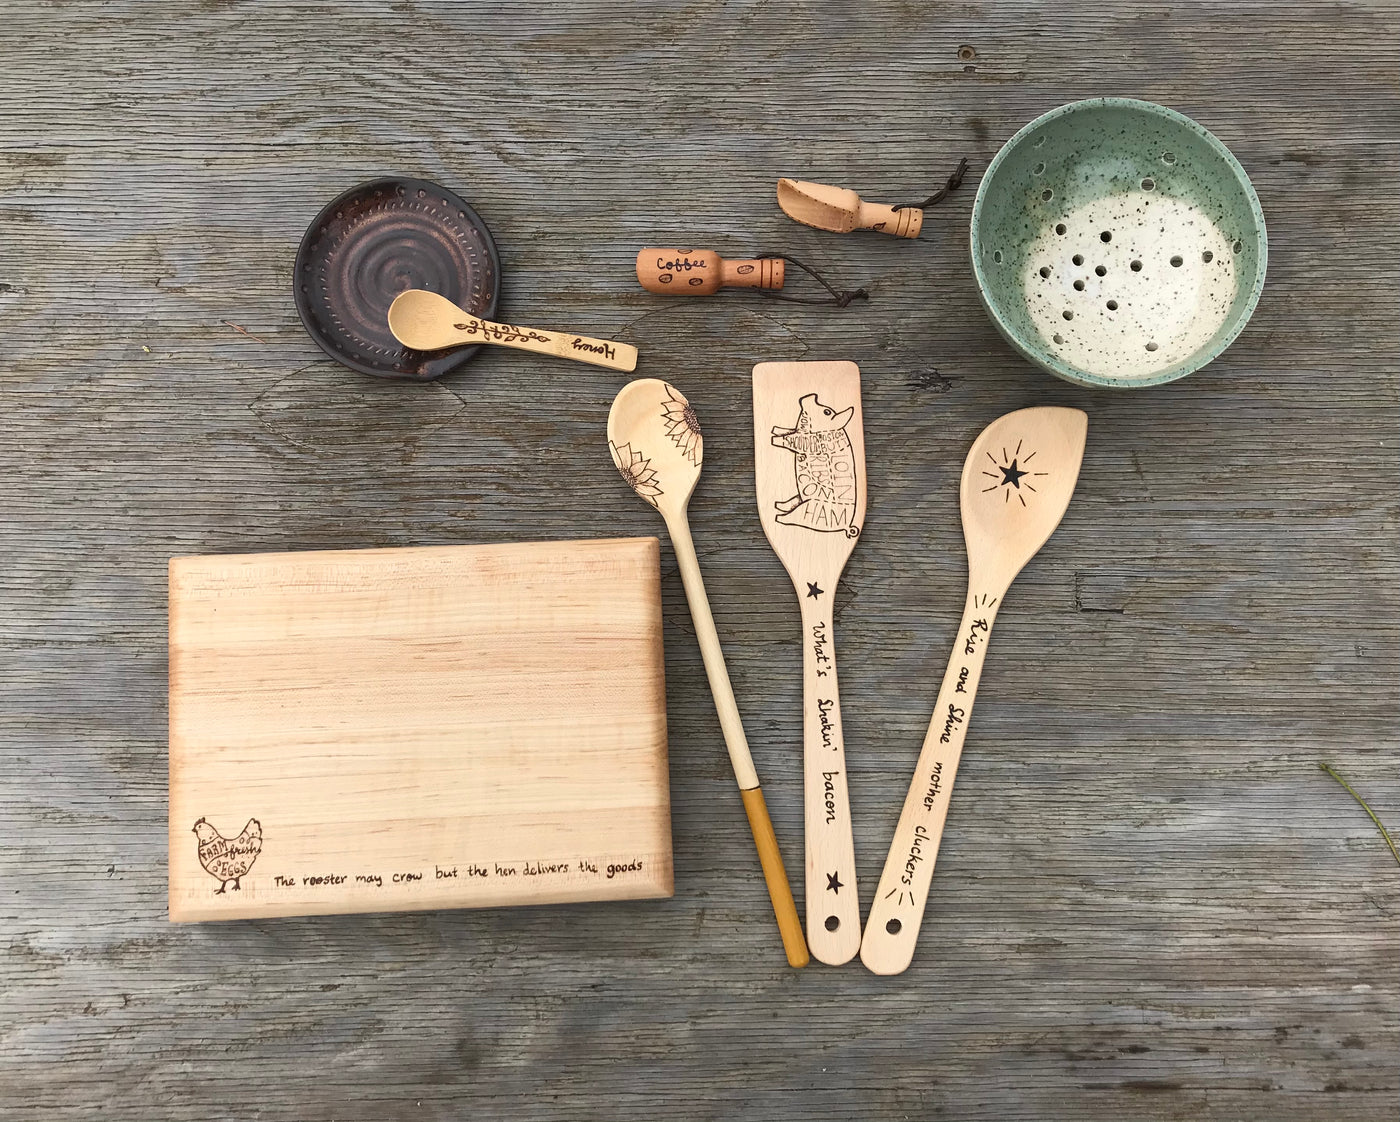 Wooden Cooking Utensil Care.  Wood Cutting Board Care.  Info on how to care for your wooden kitchen items so they will last a long time.